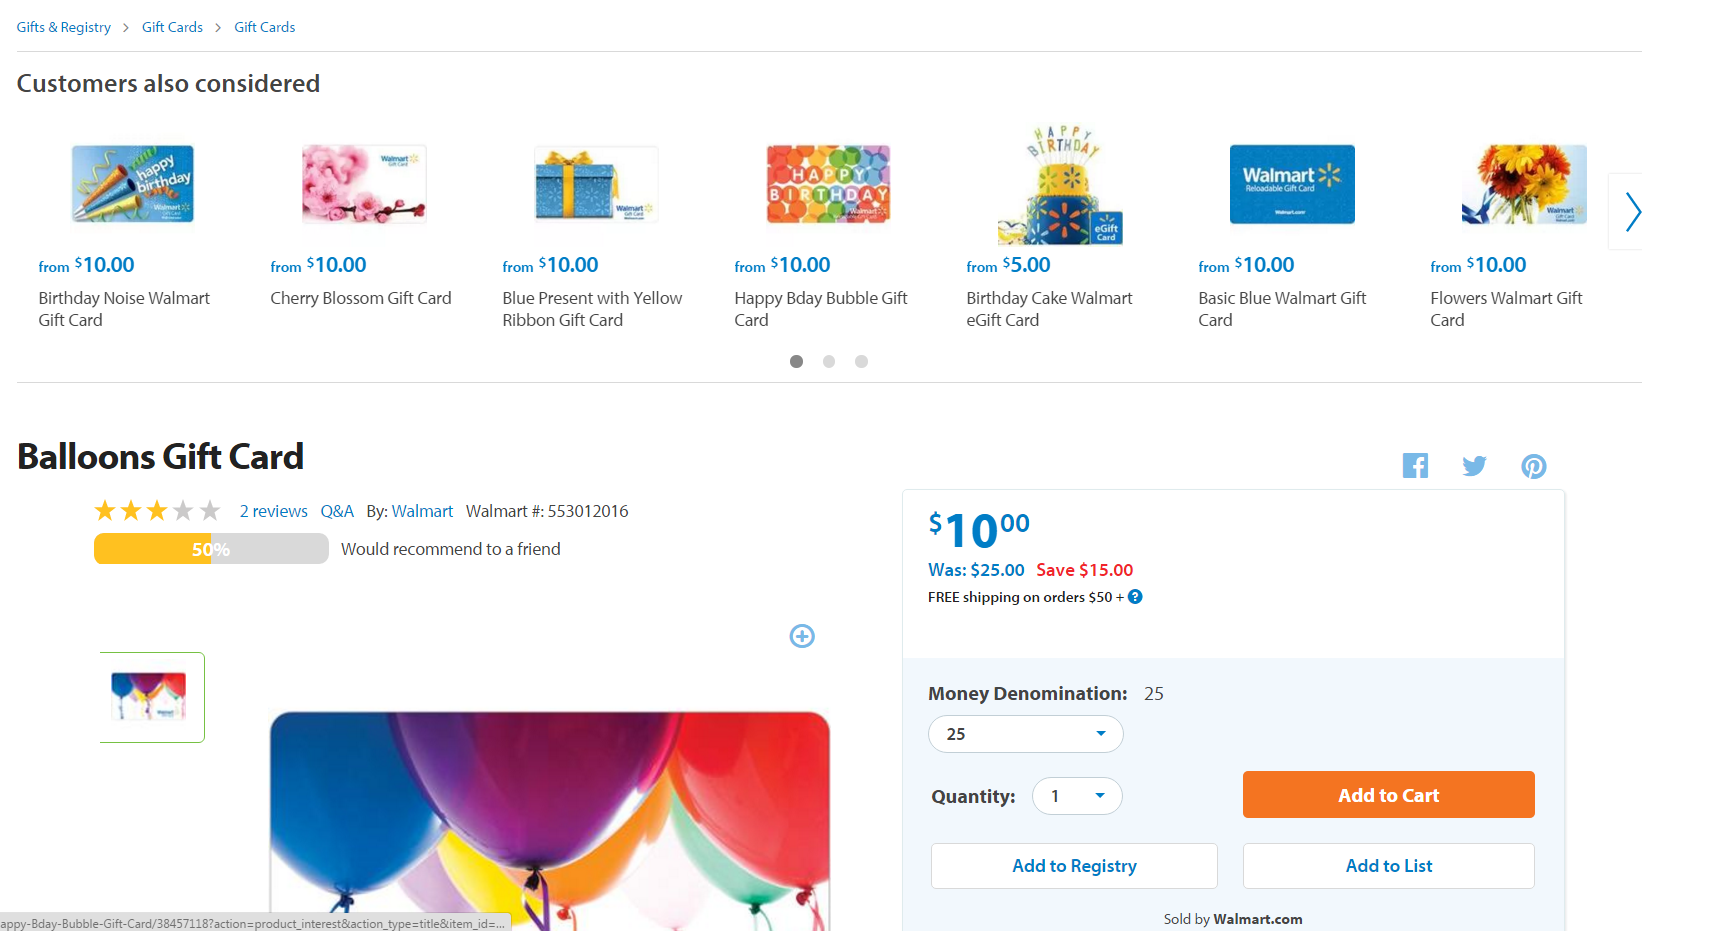 Price Mistake? $25 Walmart Gift Card For Just $10! - DansDeals.com